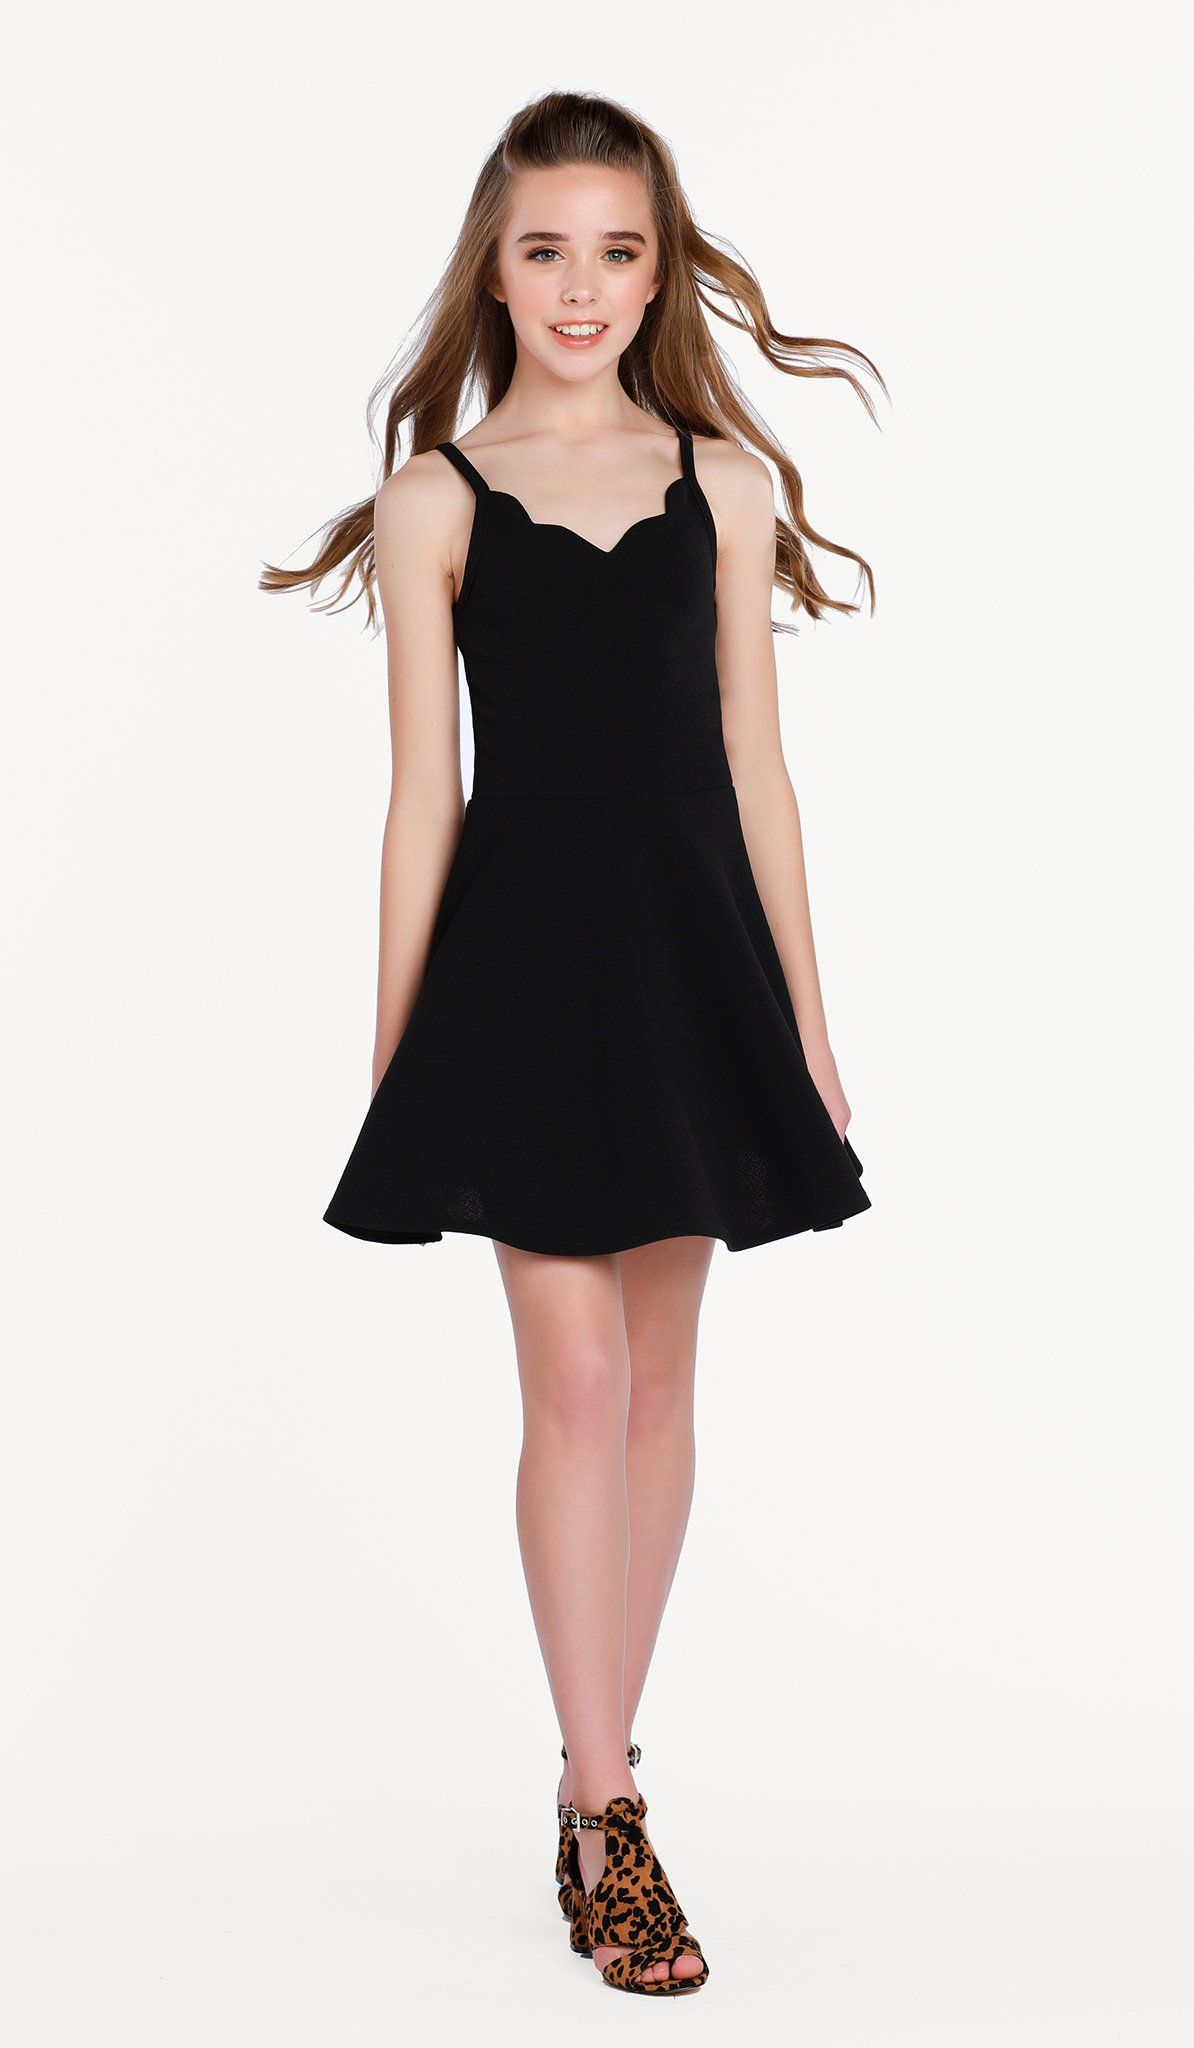 The Sally Miller Laynie Dress in Black - Black textured stretch knit fit and flare dress with scallop detail #sallymiller